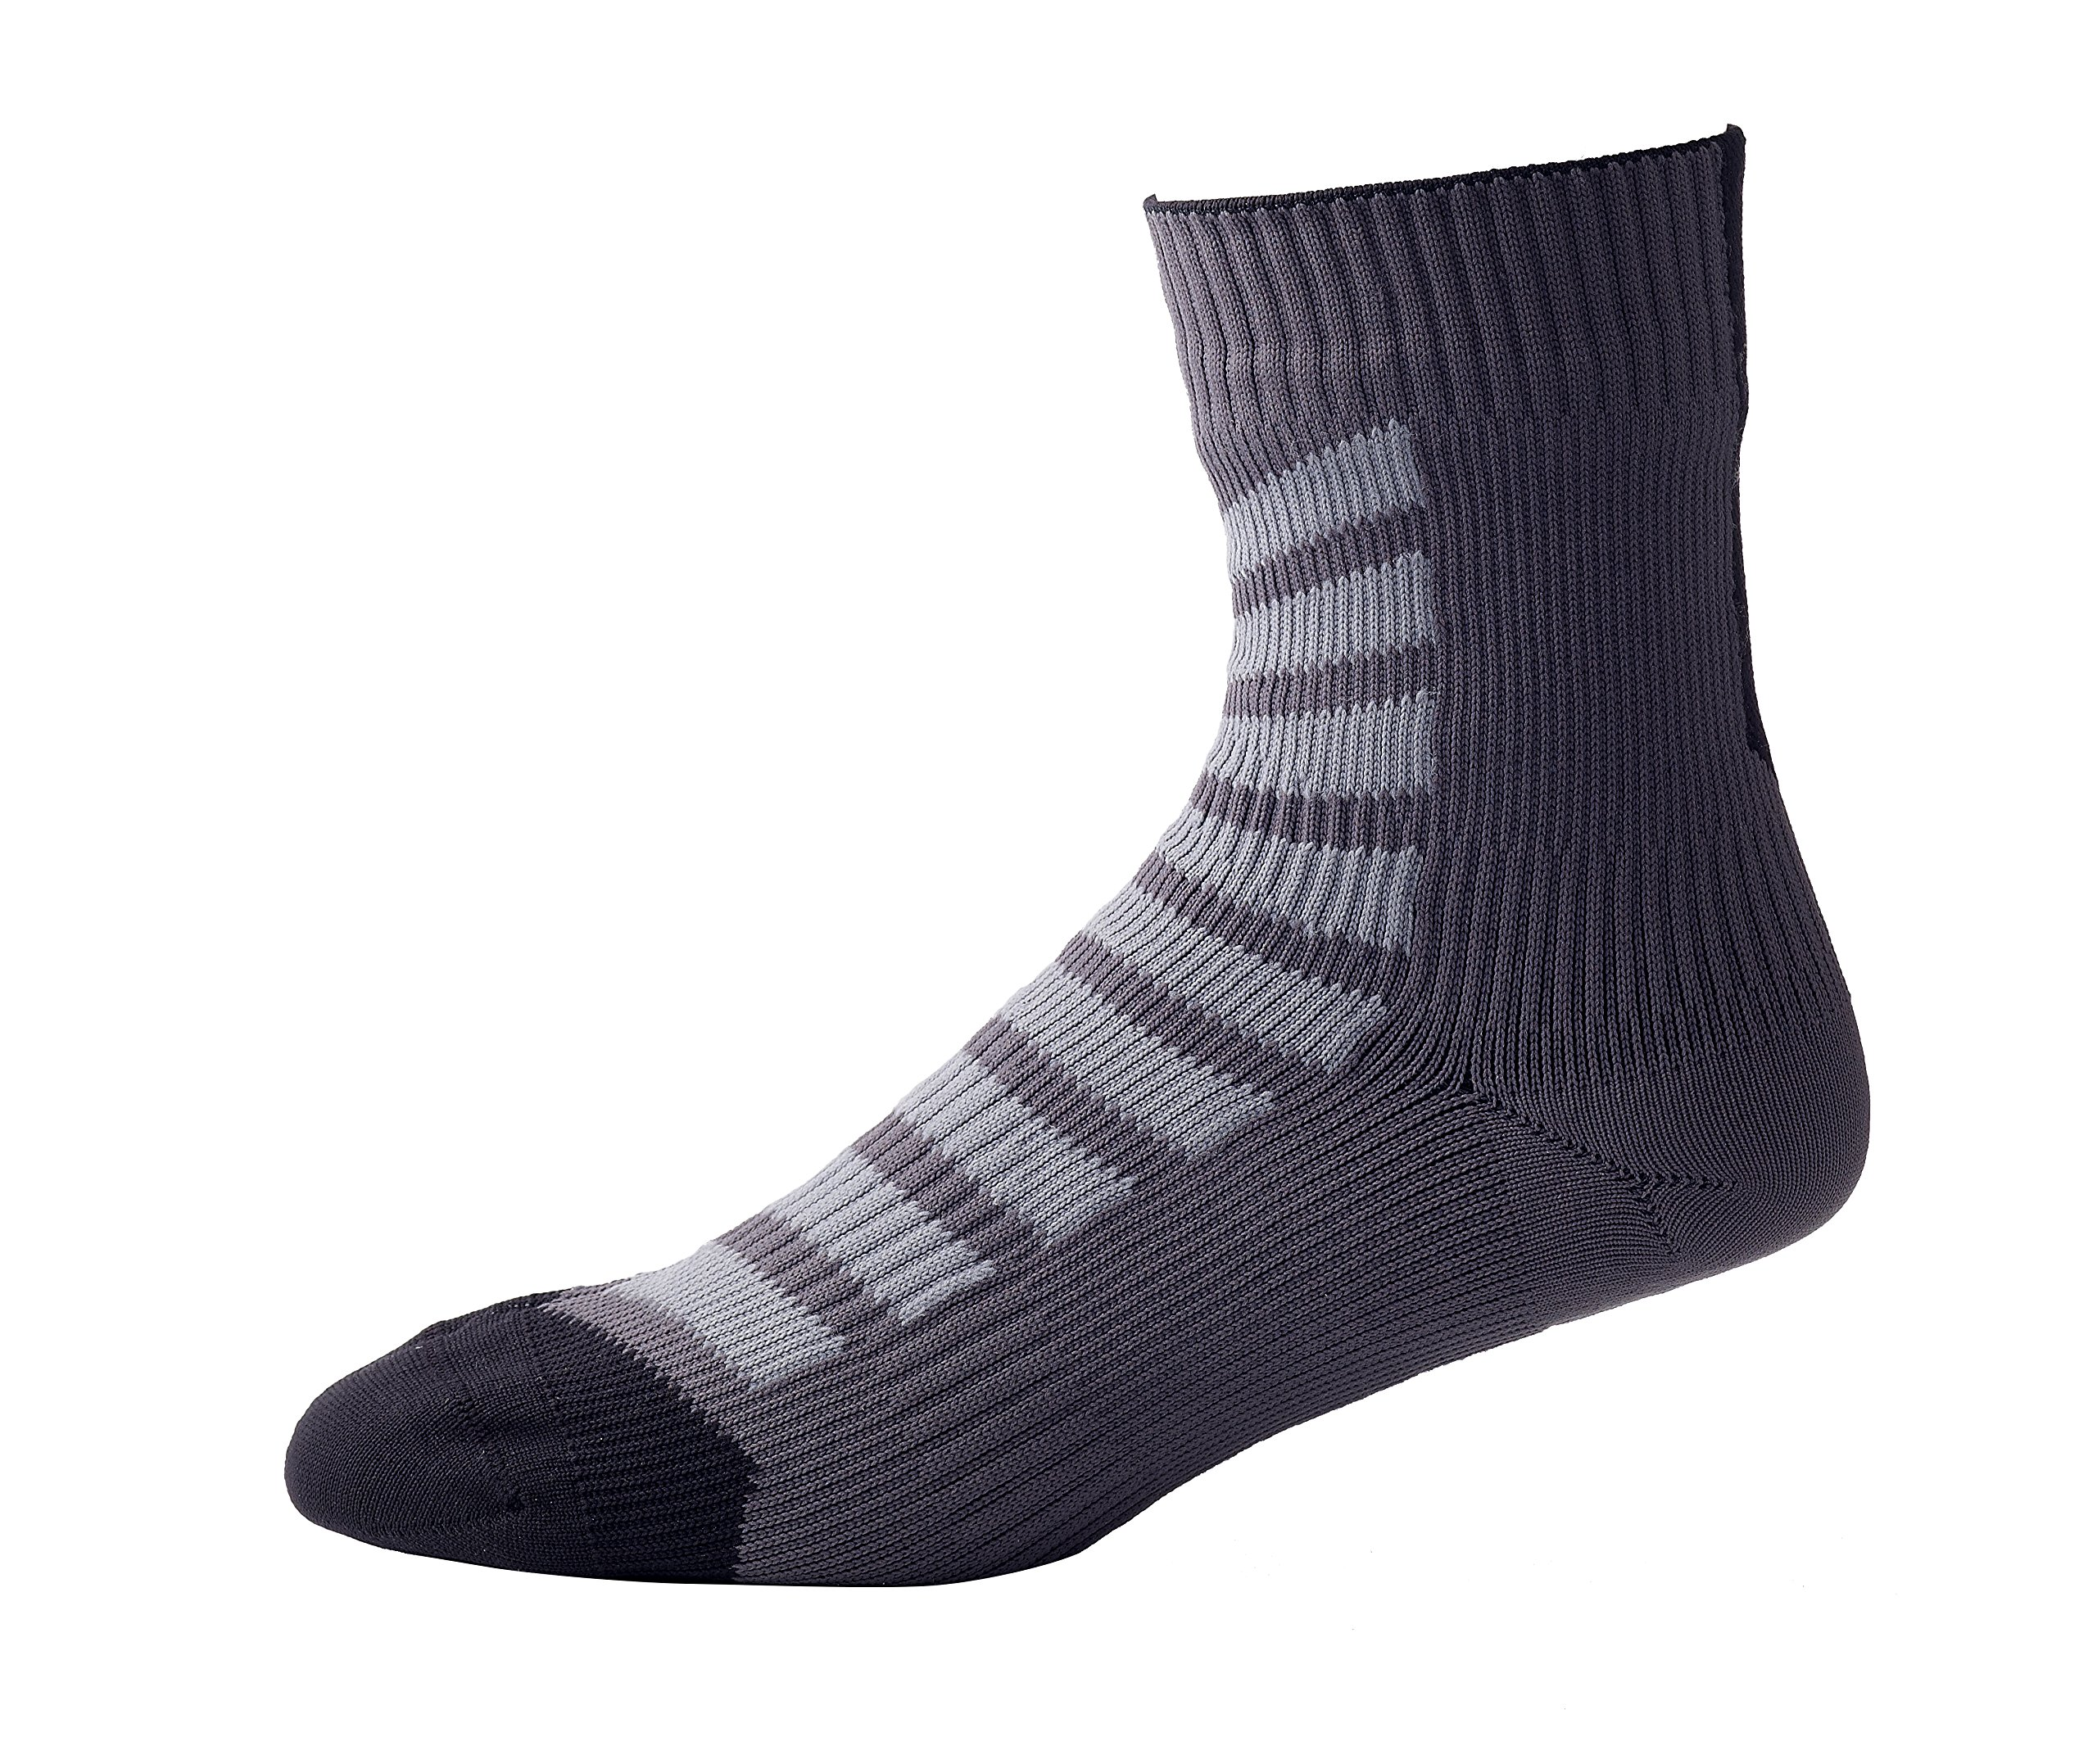 SEALSKINZ MTB Ankle Socks with Hydrostop, X Large - Anthracite/Charcoal/Black. With a Helicase brand sock ring by SEALSKINZ